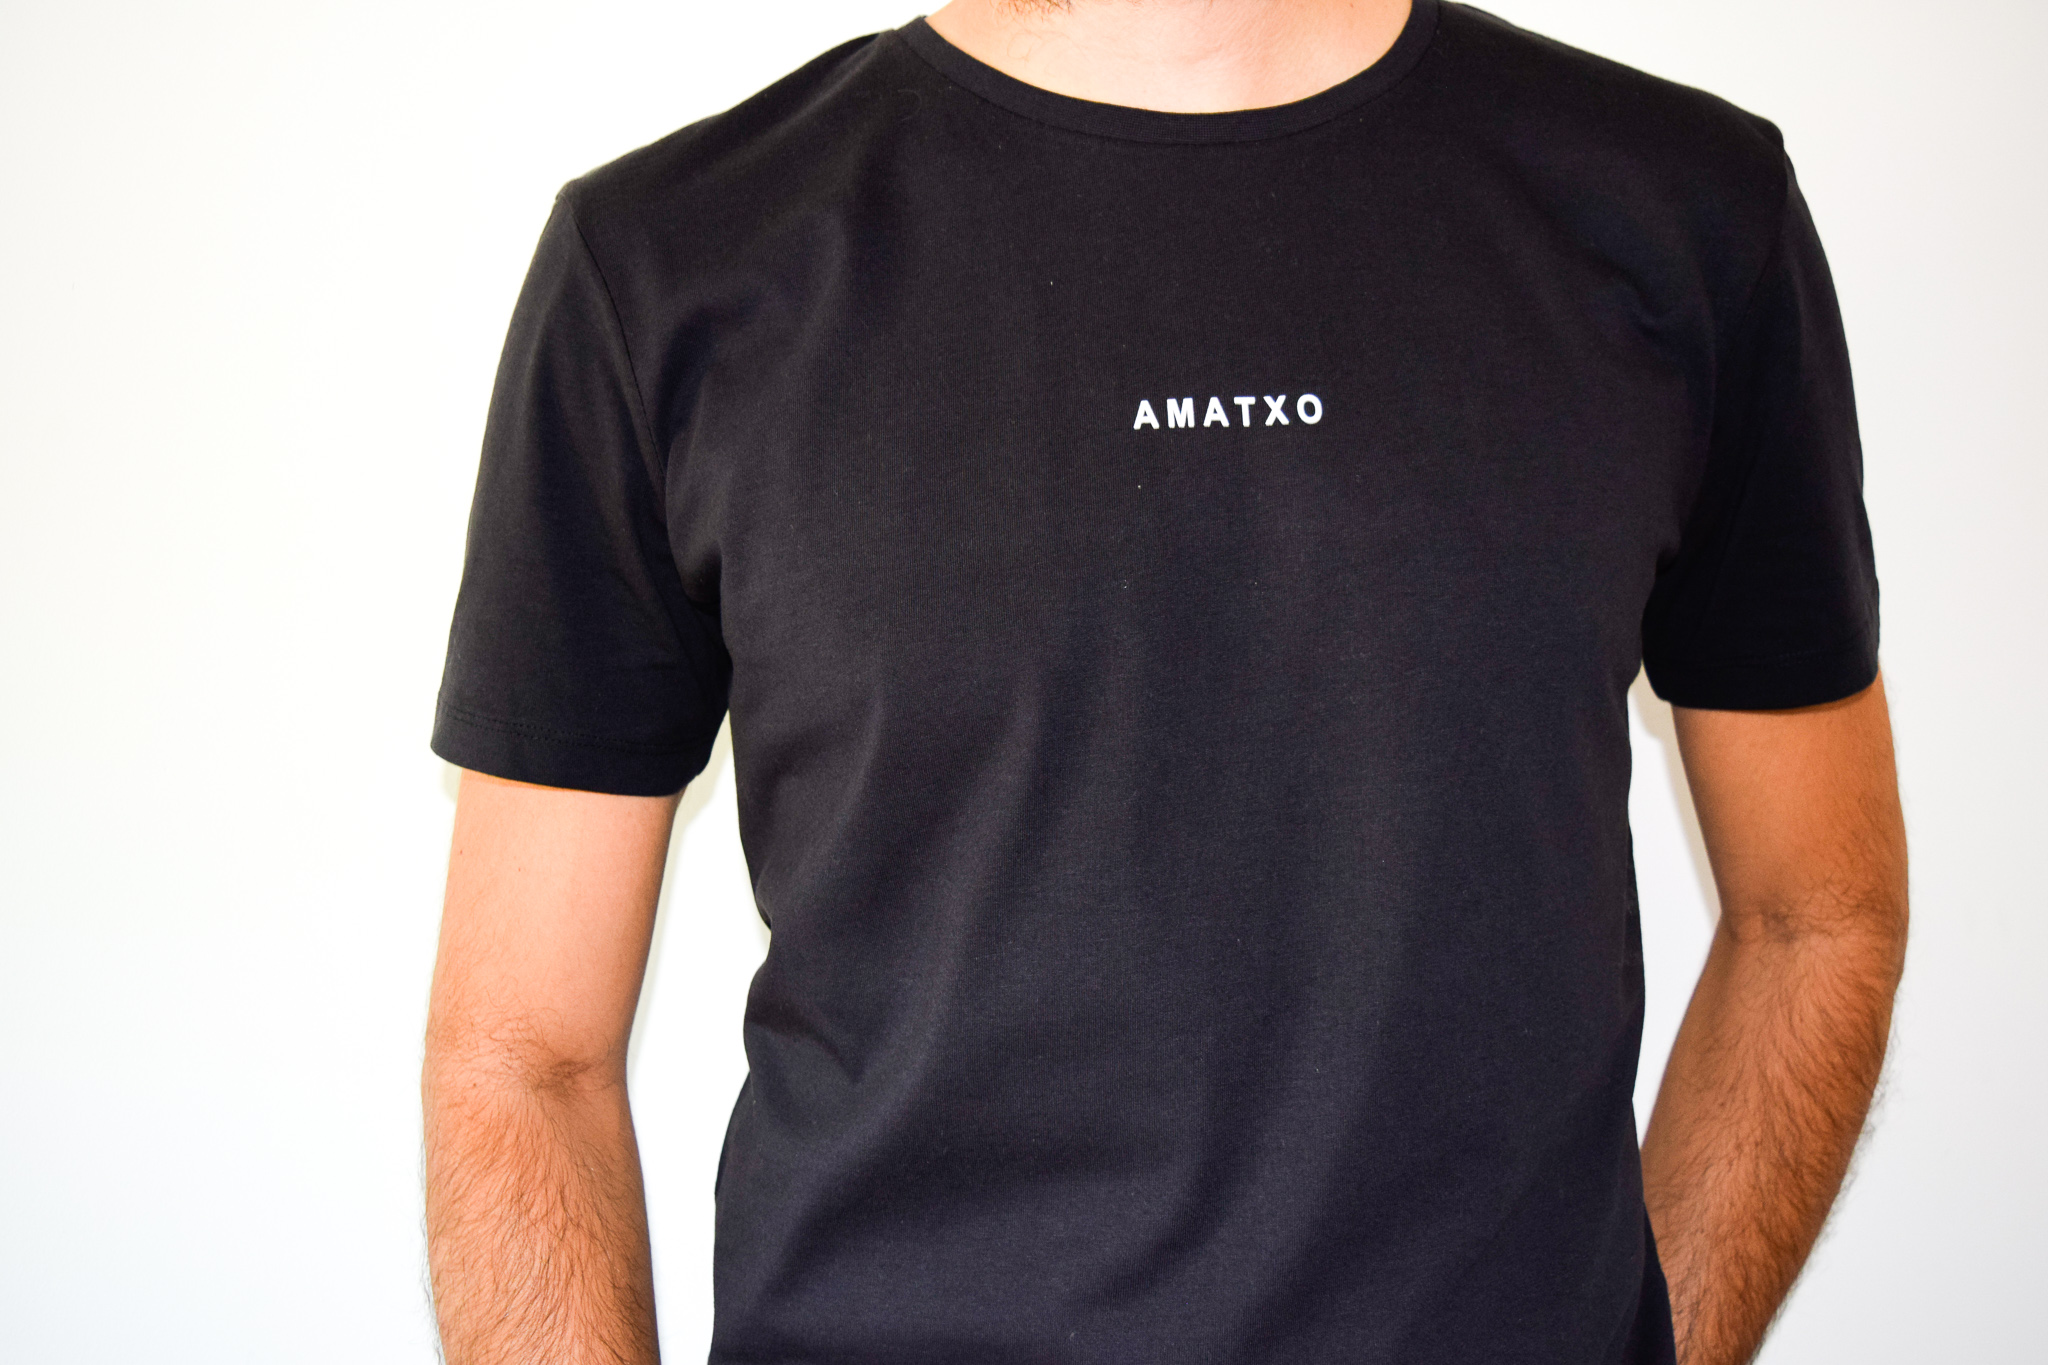 camiseta amatxo negro chico